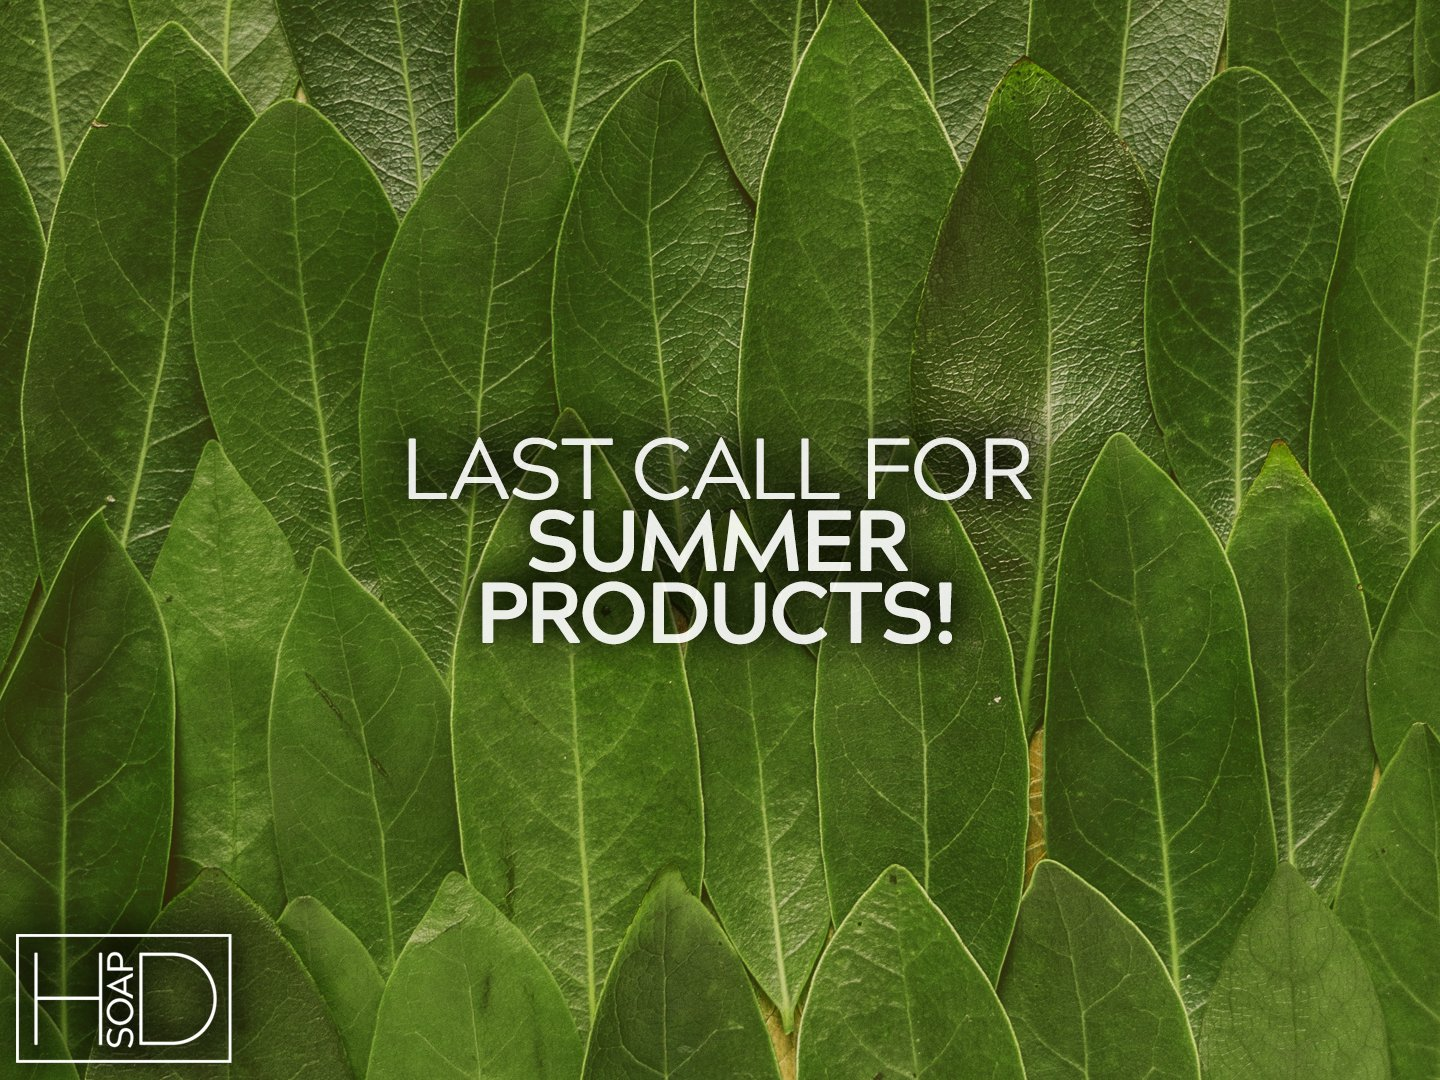 Summer Products